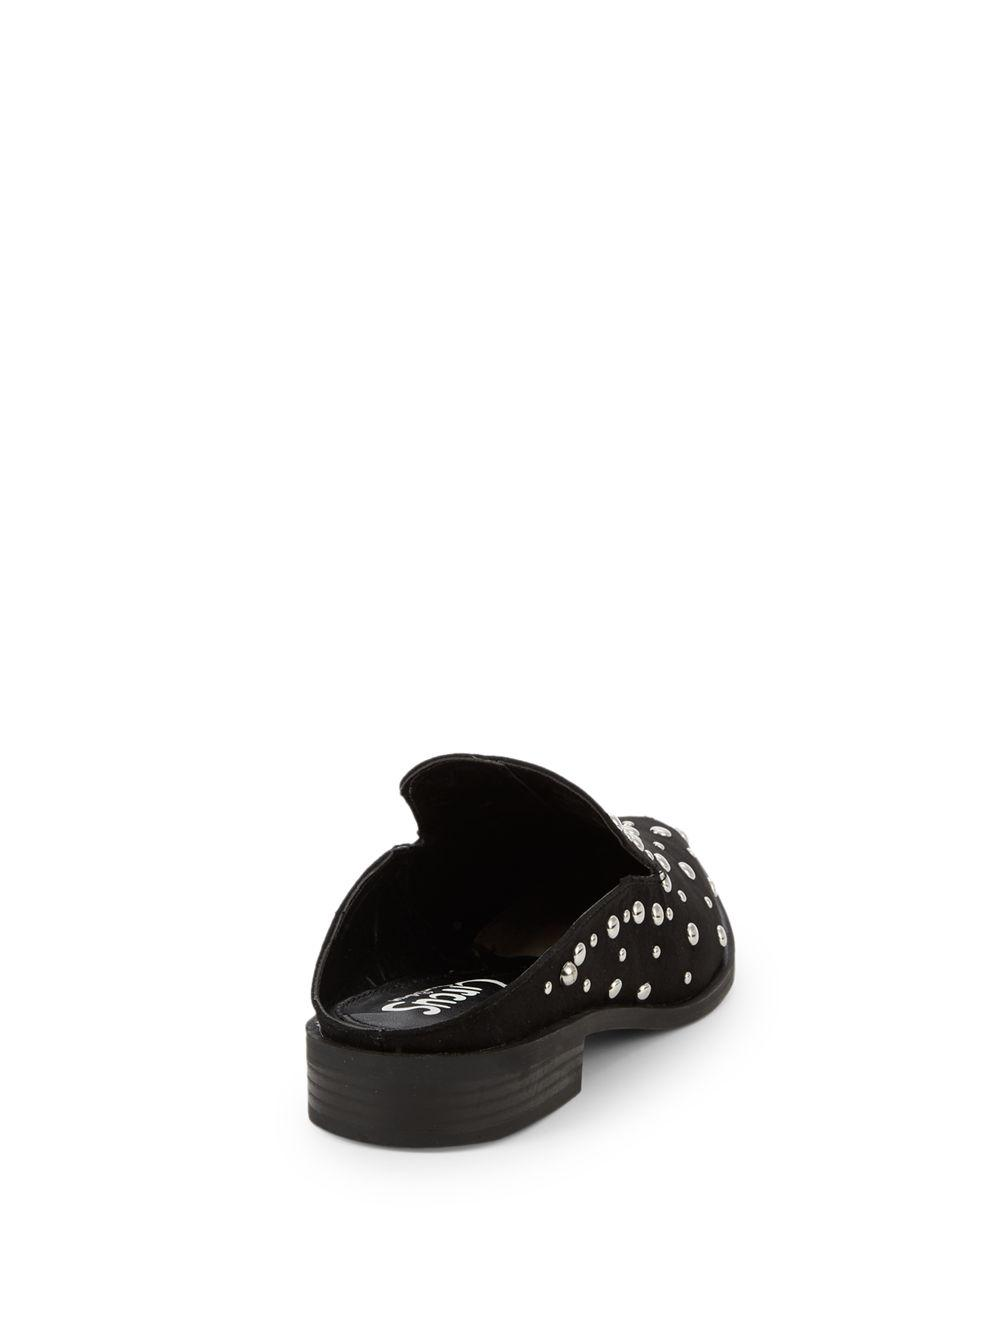 8d7bc7bdb Circus by Sam Edelman Lucielle Embellished Mule in Black - Save 44% - Lyst